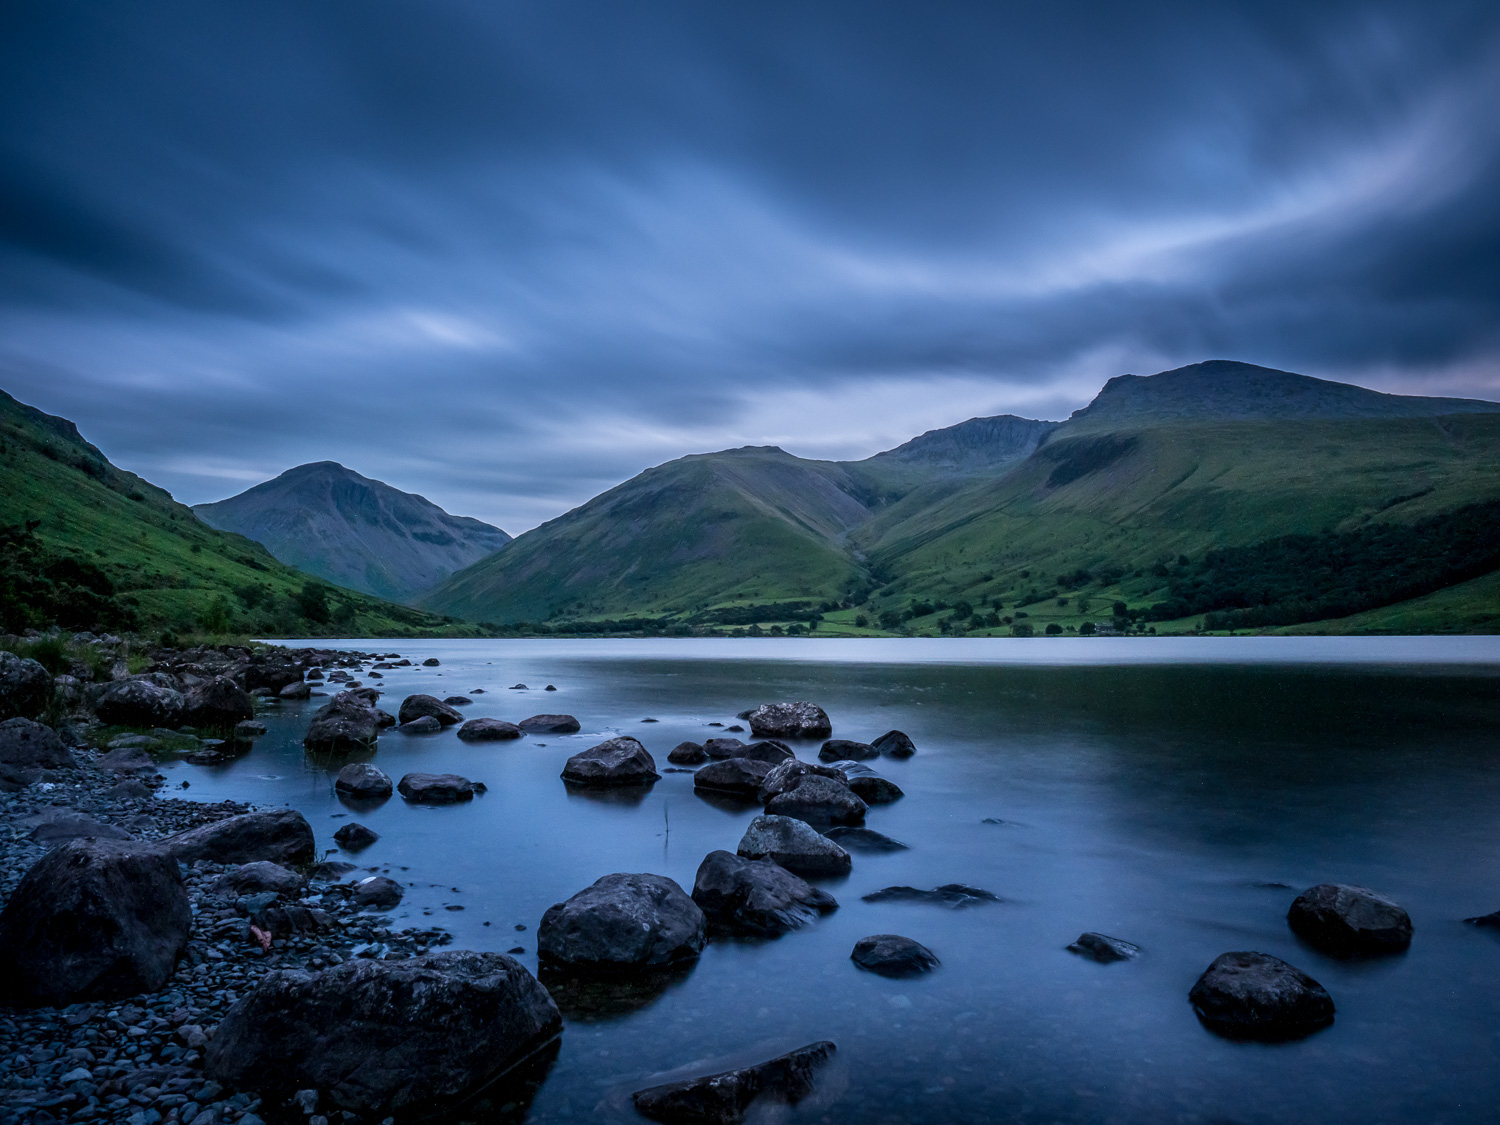 A Long Exposure Photograph At Dusk Showing The Mountains Great Gable, Lingmell And Scafell Pike Above Wast Water In The Lake District, Cumbria.